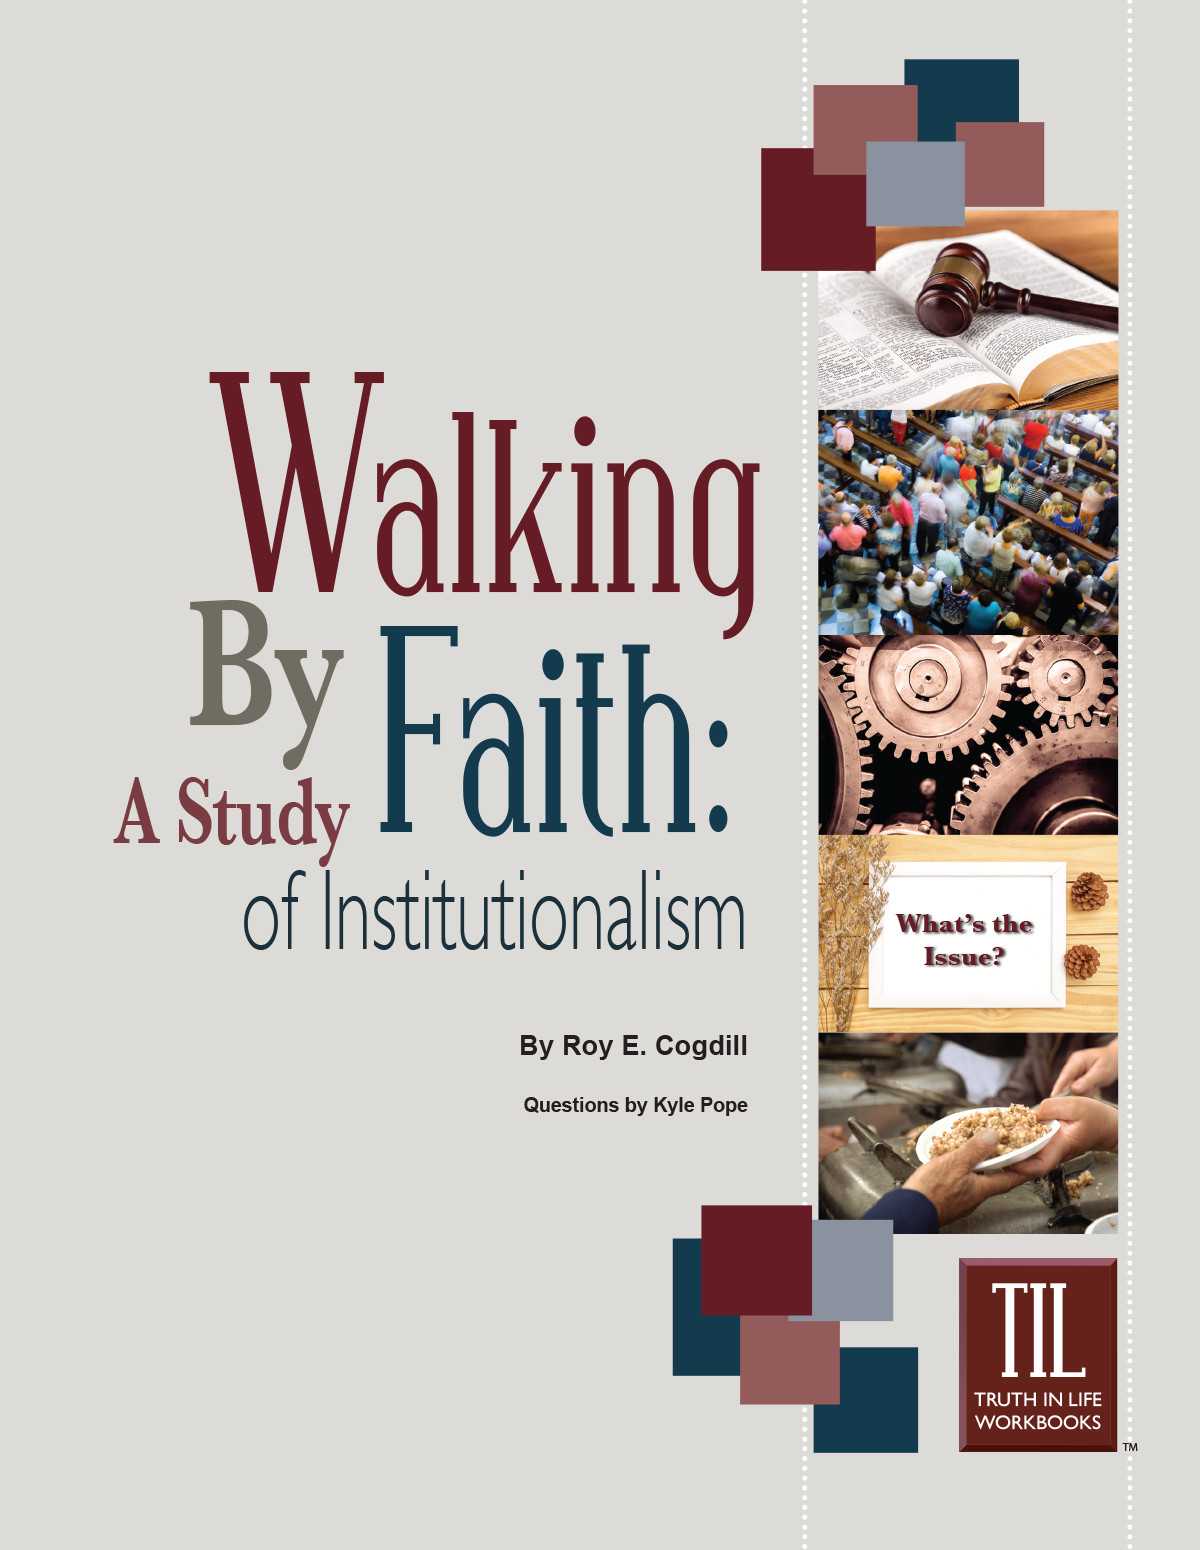 til-walking-by-faith-cover-front.png